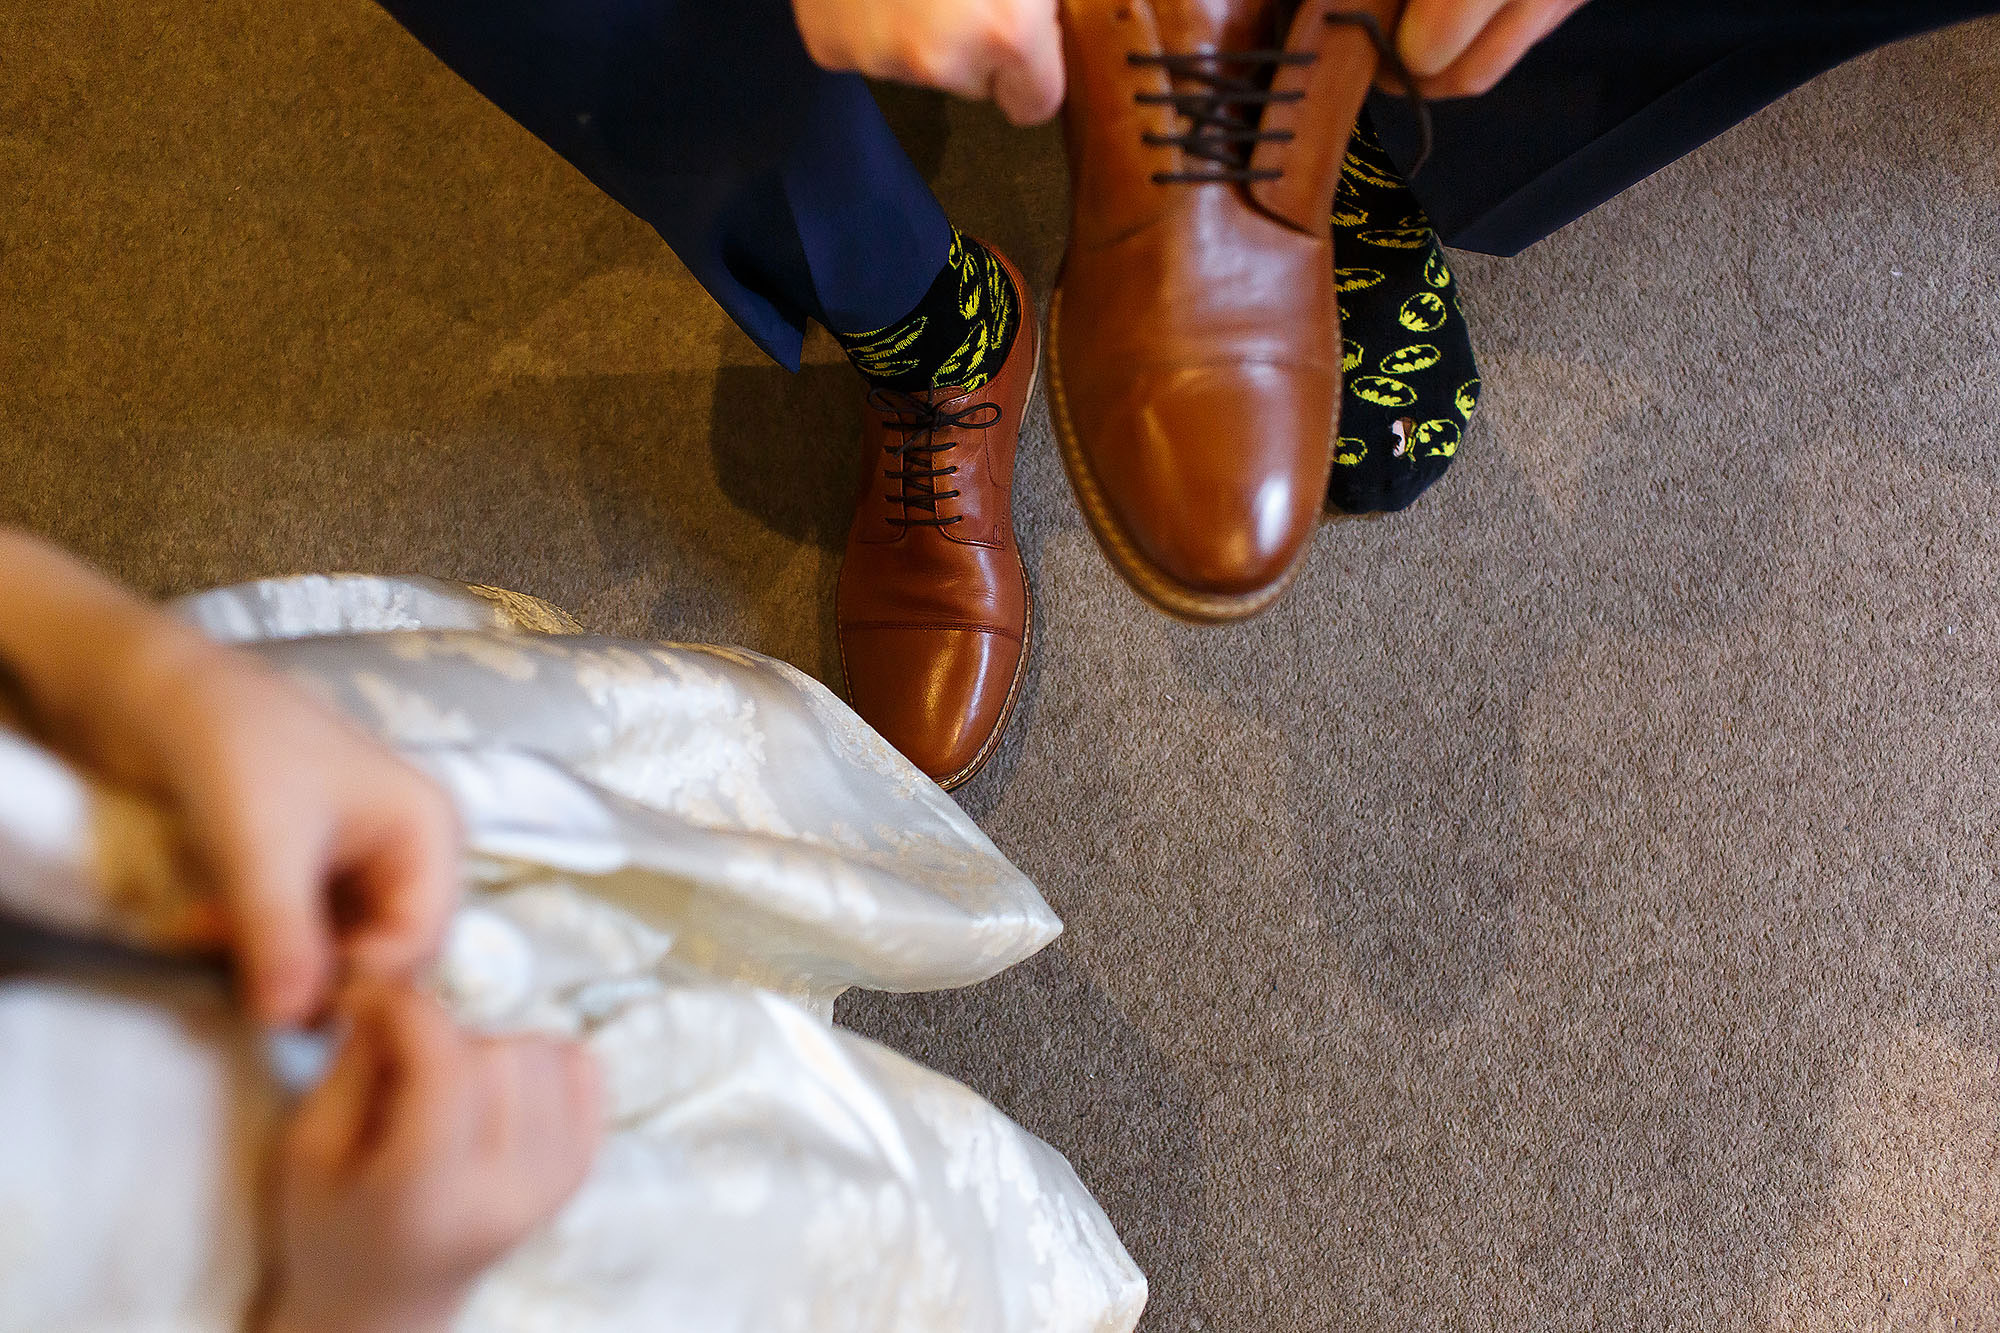 Flower girl fastening shoes as Groom puts on his batman socks | Mitton Hall wedding photographs by Toni Darcy Photography